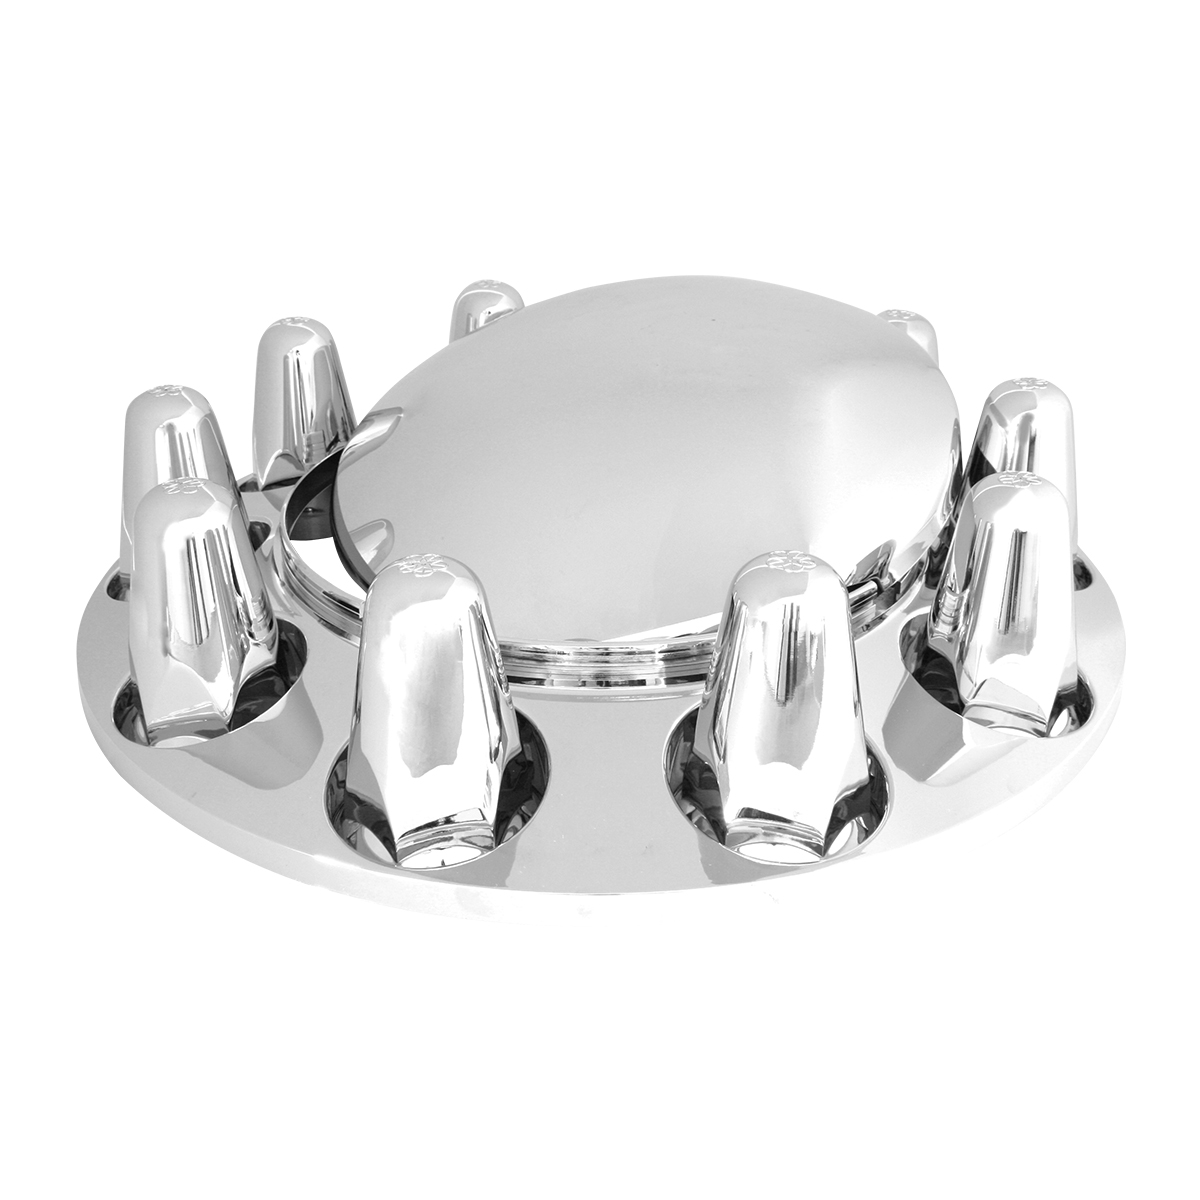 40130 Chrome Plastic ABS Front Axle Covers with Removable Standard Hub Cap